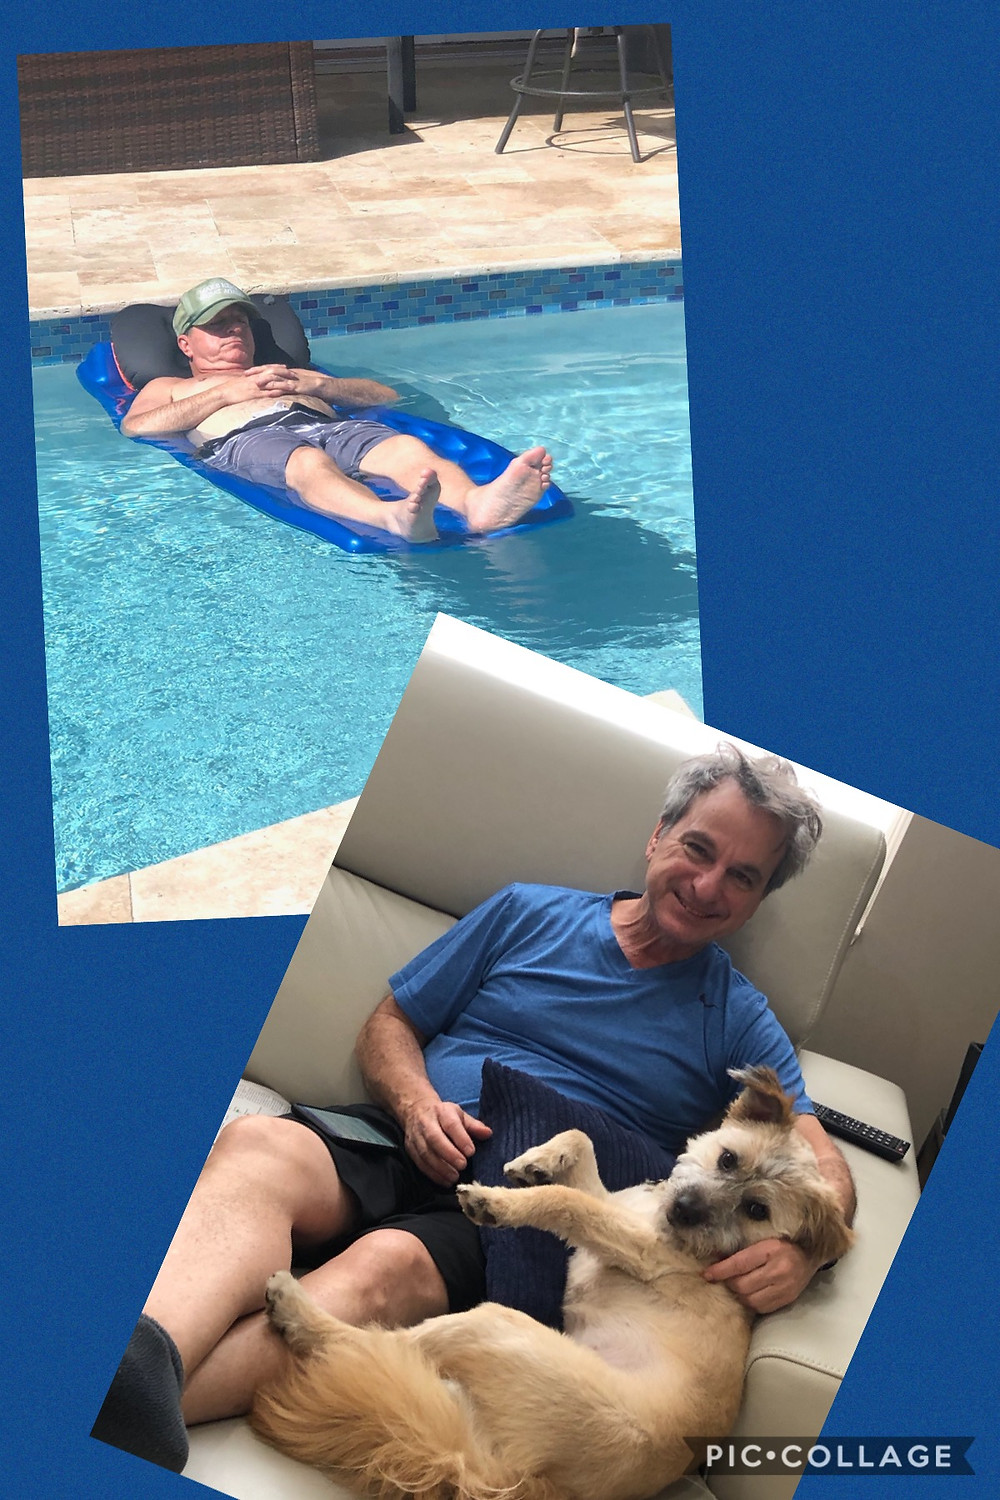 Relaxing in the pool and with our grand dog, Rio